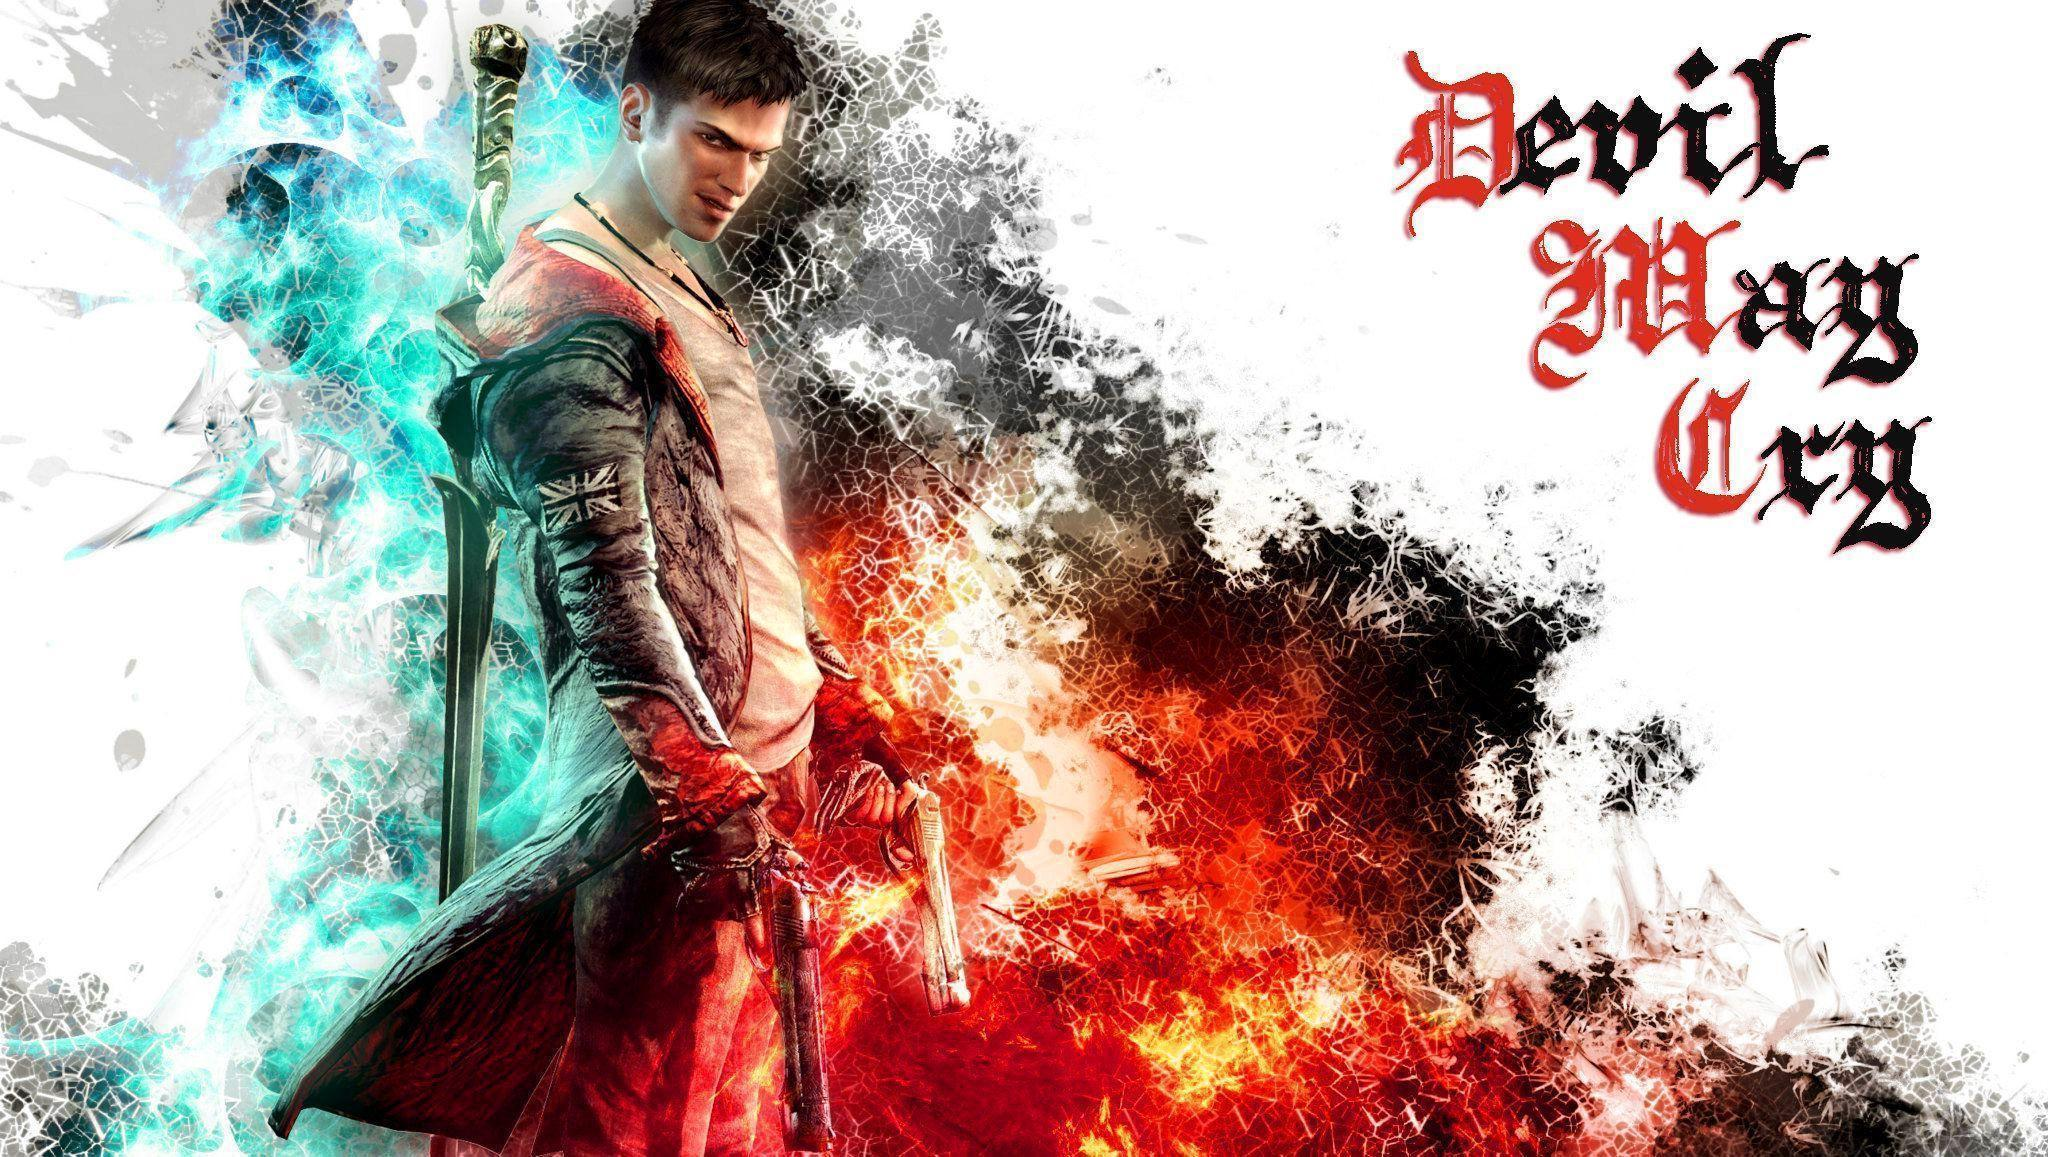 Devil May Cry Dante Wallpaper: Devil May Cry HD Wallpapers